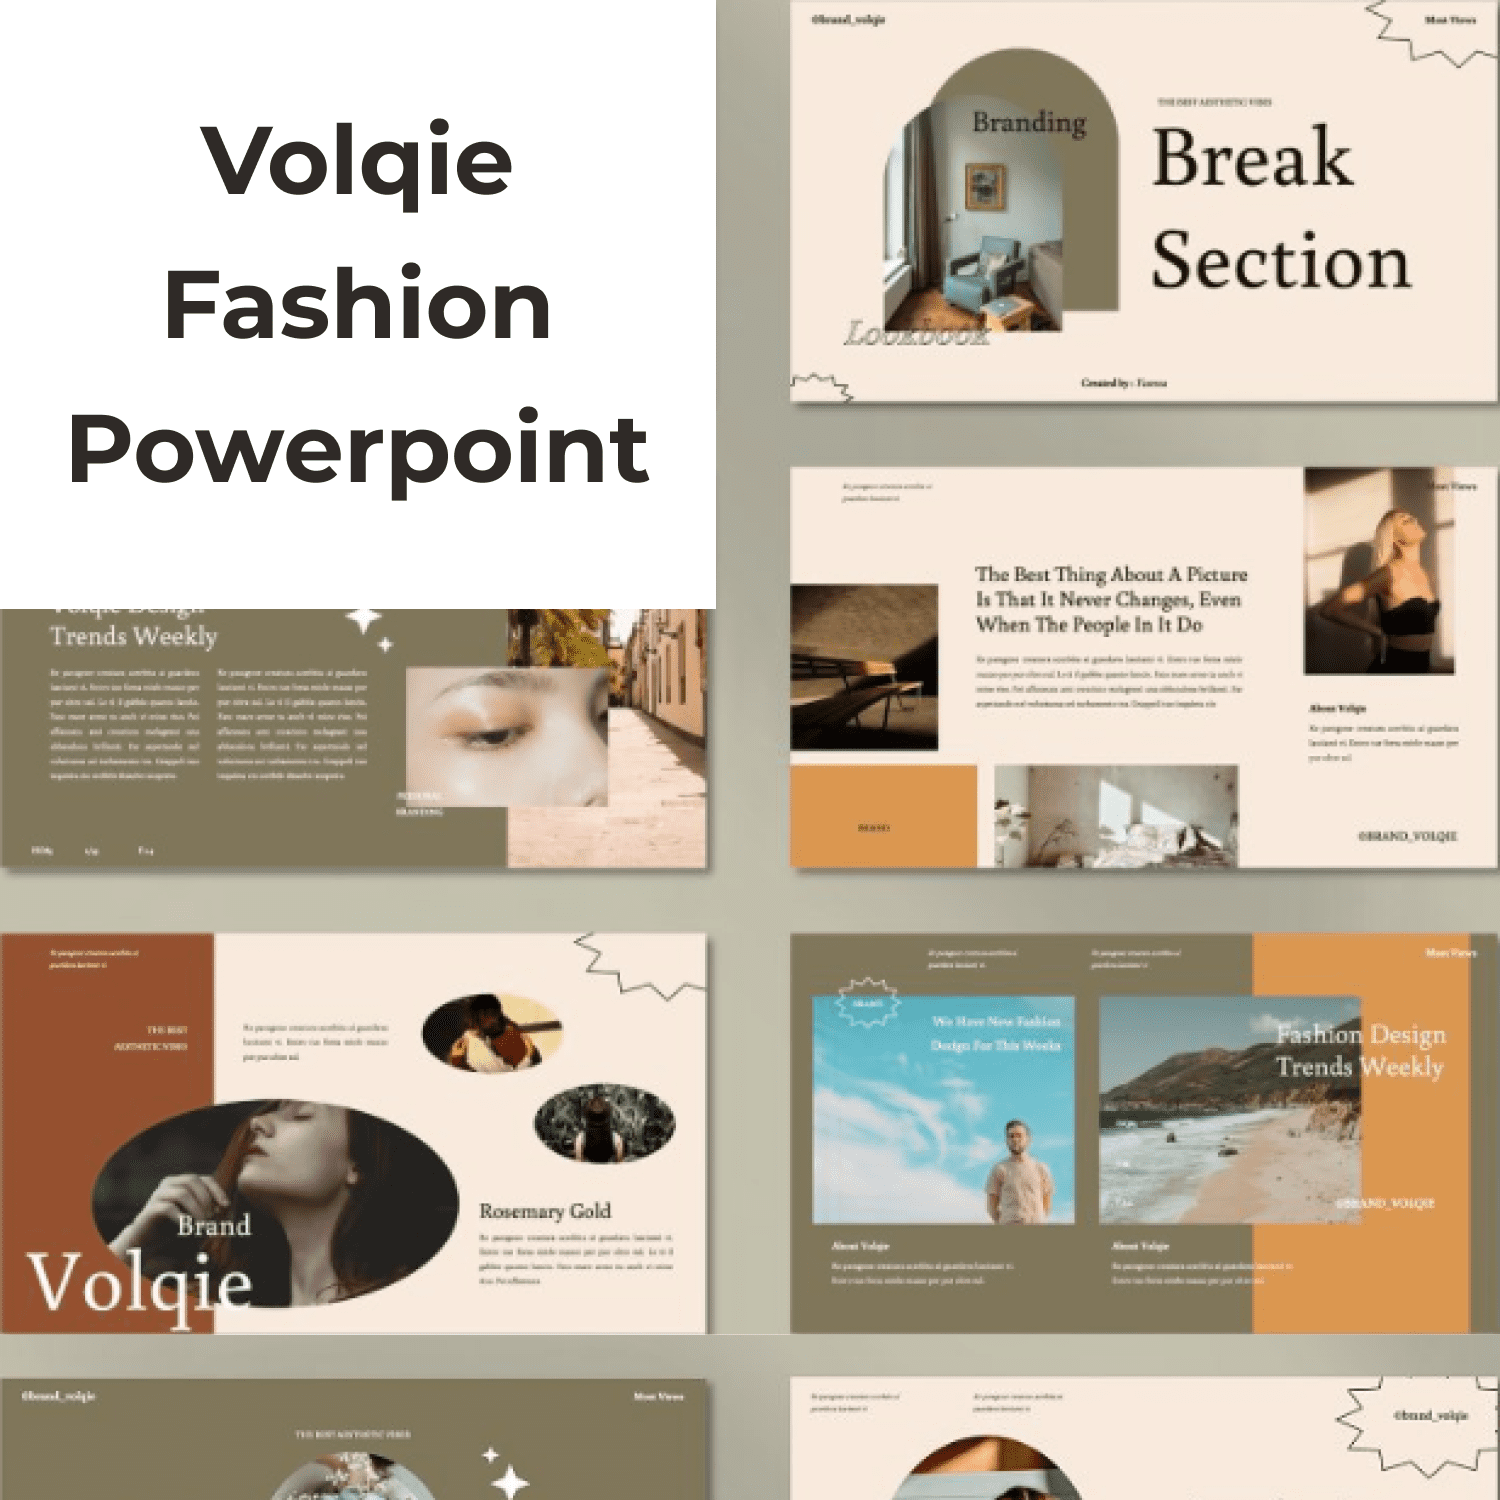 Volqie - Fashion Powerpoint cover image.